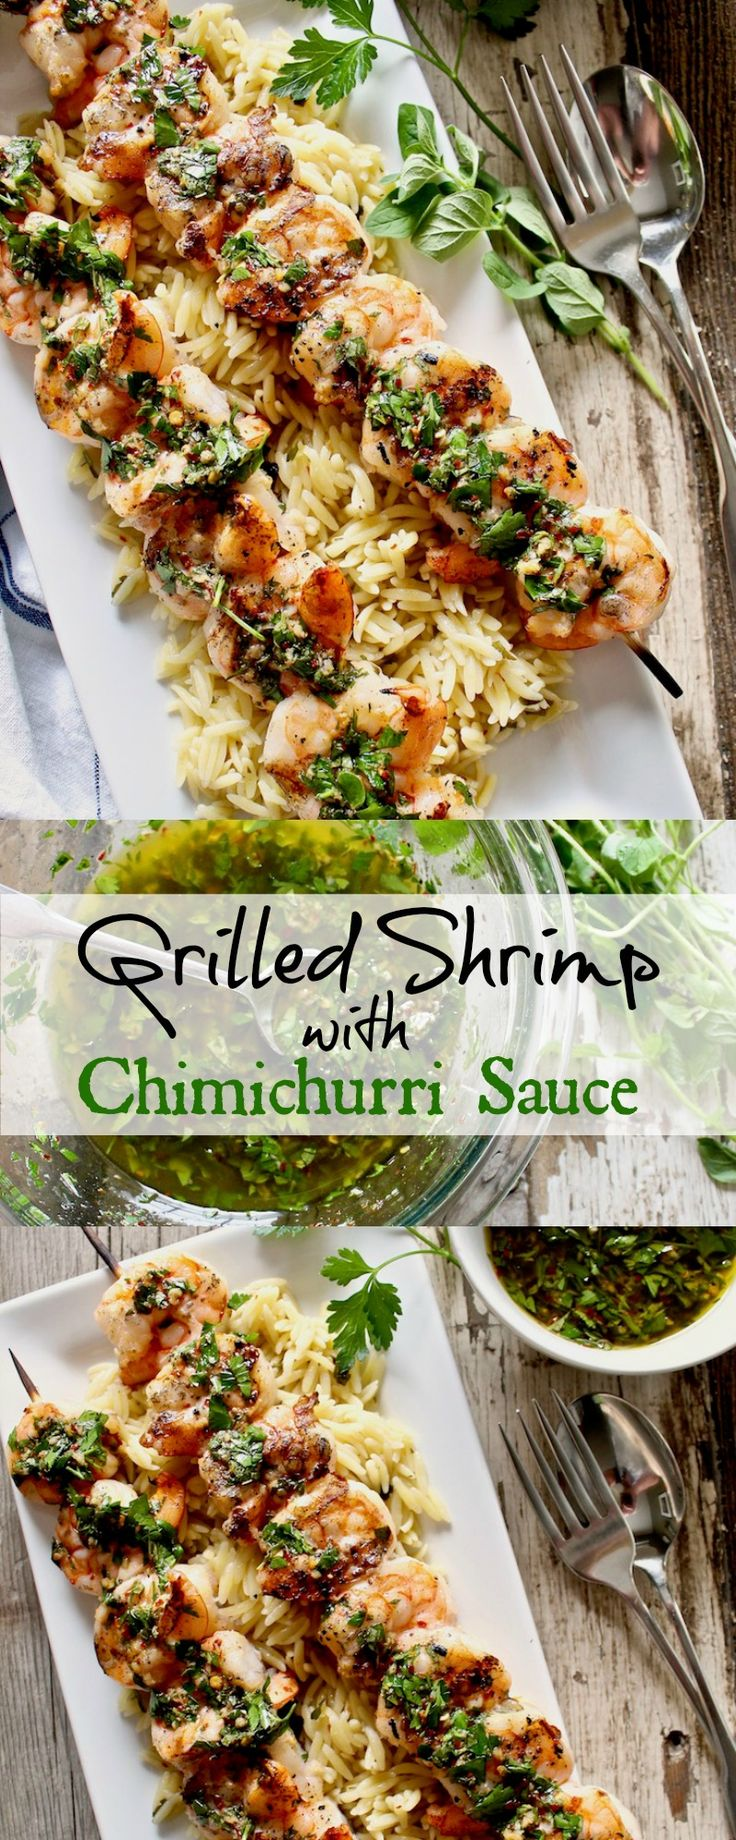 Shrimp, brined and grilled, with Chimichurri Sauce ~ a grilling season favorite.